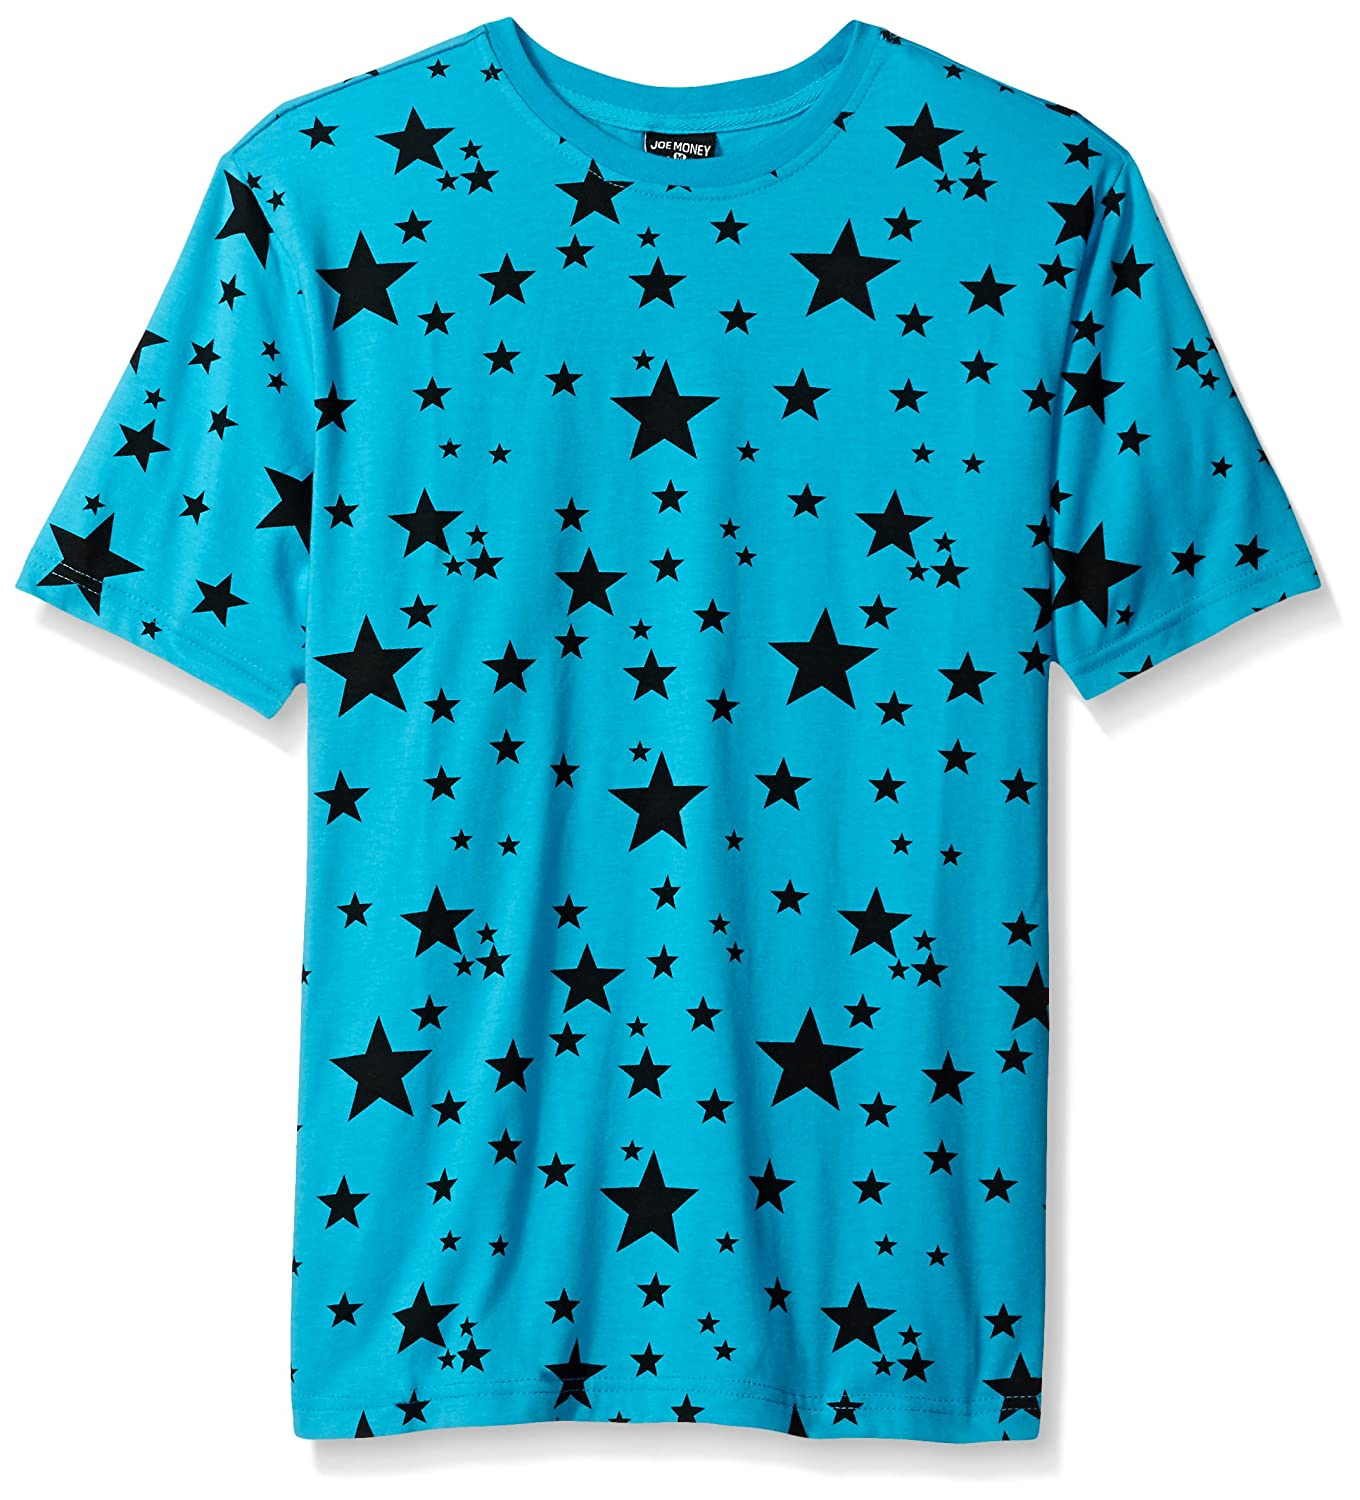 Youstar Men's New Stylish Super Comfortable Star Printed Tee